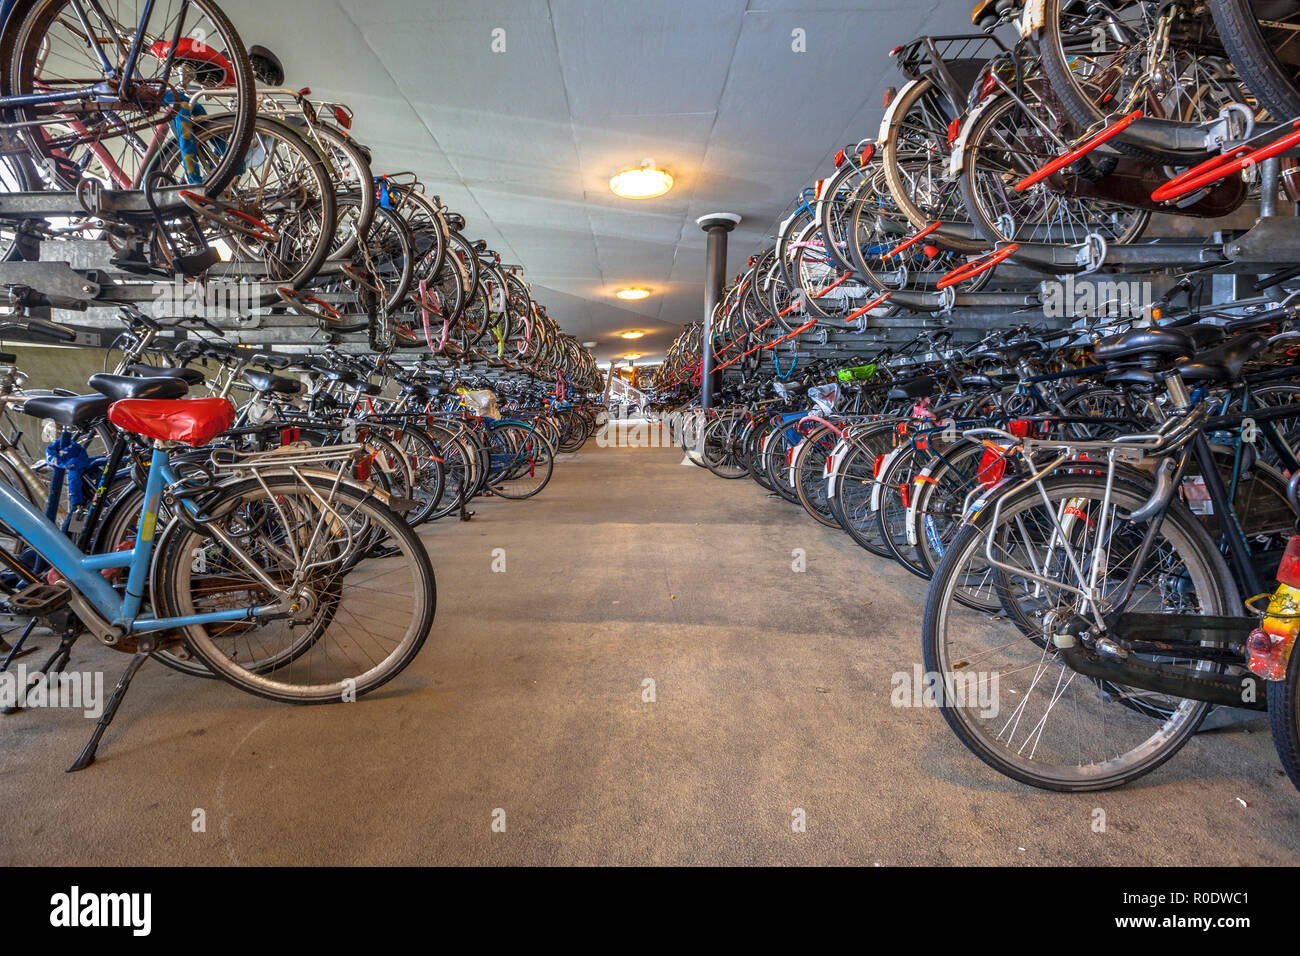 Public Bicycle parking Groningen central station. The city of Groningen has been voted ' most cycle friendly city of the Netherlands' for 3 years in a - Stock Image